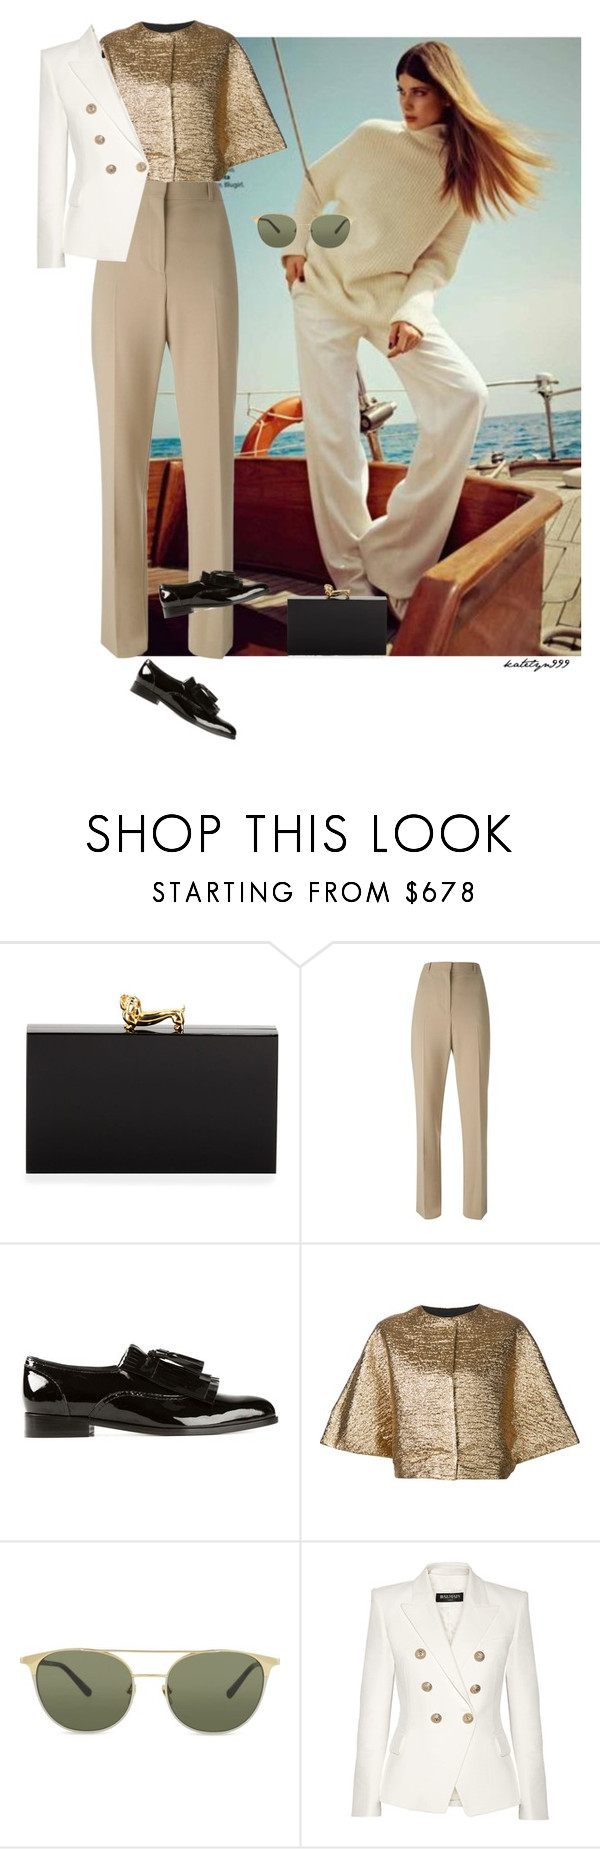 """""""Luxe Life..."""" by katelyn999 ❤ liked on Polyvore featuring Charlotte Olympia, Givenchy, Lanvin, Linda Farrow, Balmain, women's clothing, women's fashion, women, female and woman"""